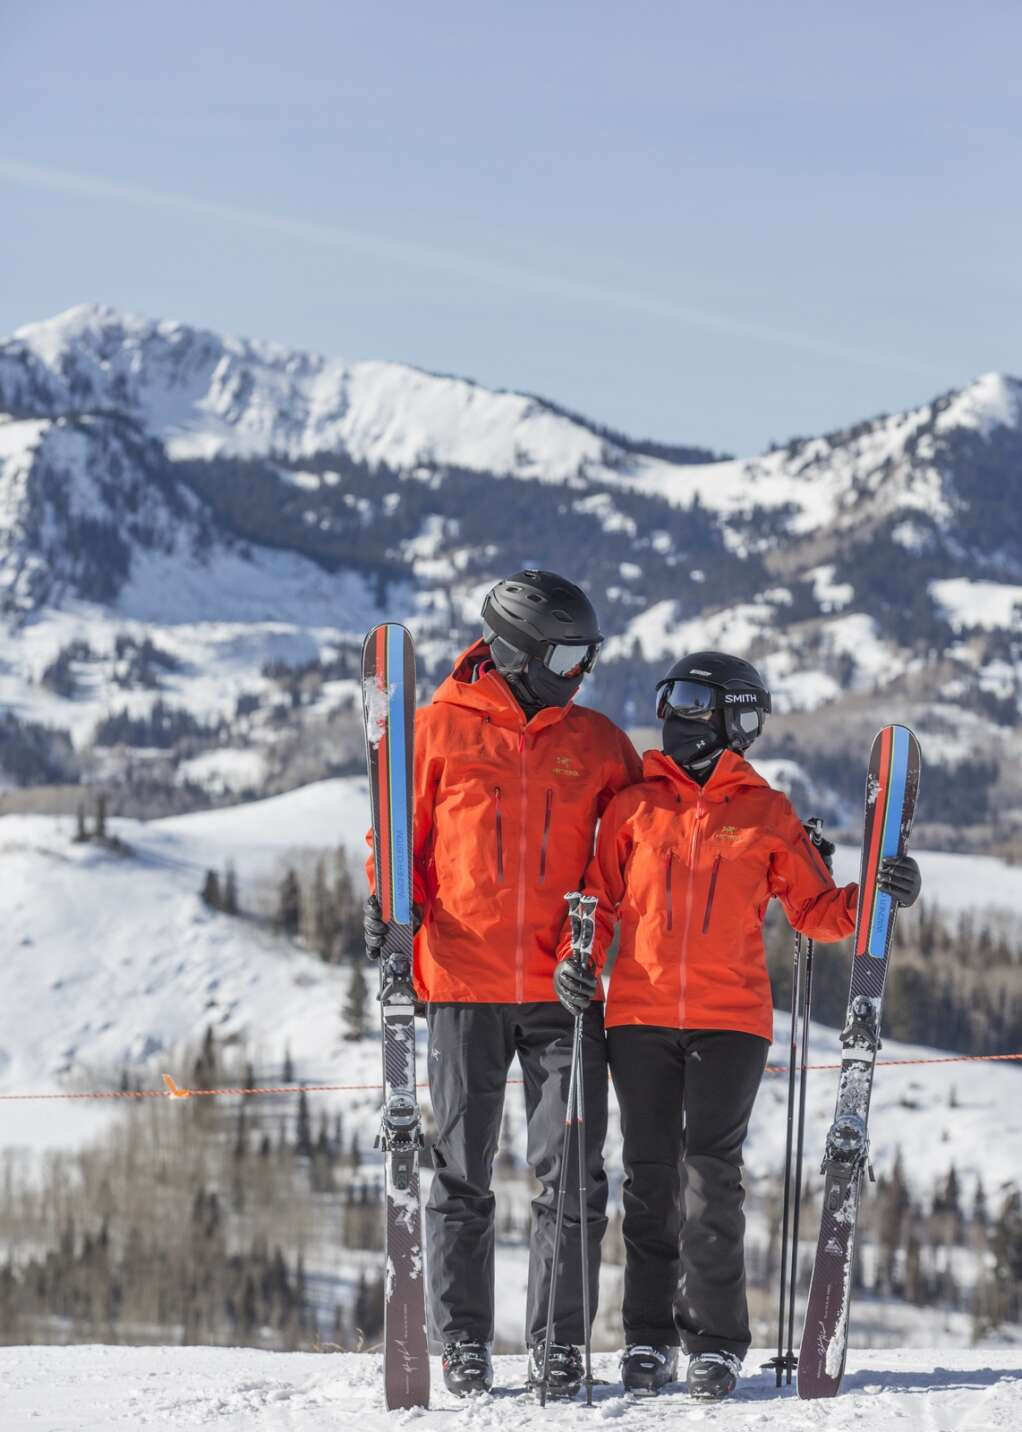 Clayton Peak is seen in the distance behind Belinda and Mike McConnell as they pose for a photo near the top of Homeward Bound, a green run at Deer Valley Resort, on Thursday, Jan. 14, 2021. | Tanzi Propst/Park Record